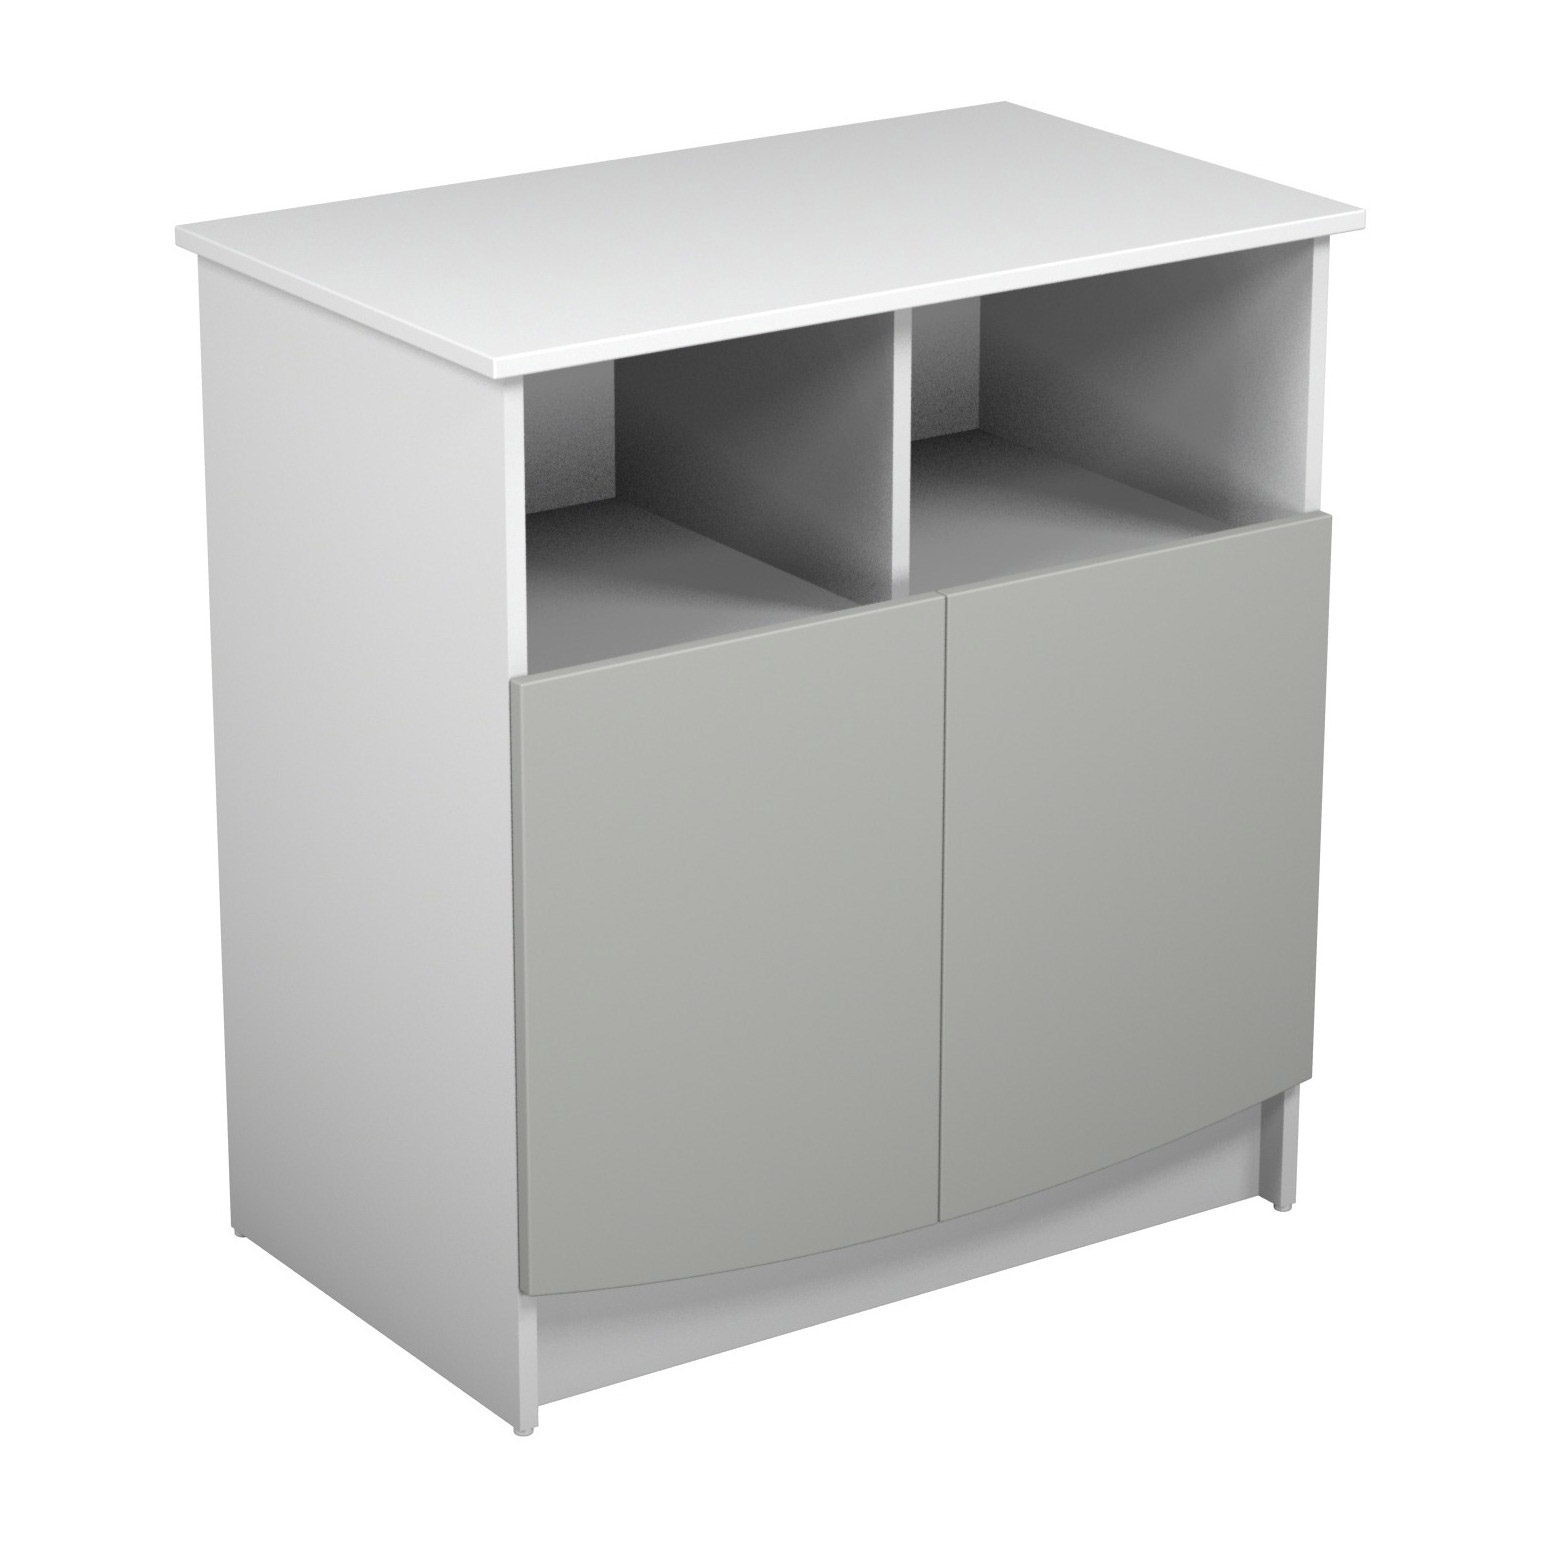 Primo Duo Commode 2 Portes Gris Blanc De Jurababy Commodes Aubert